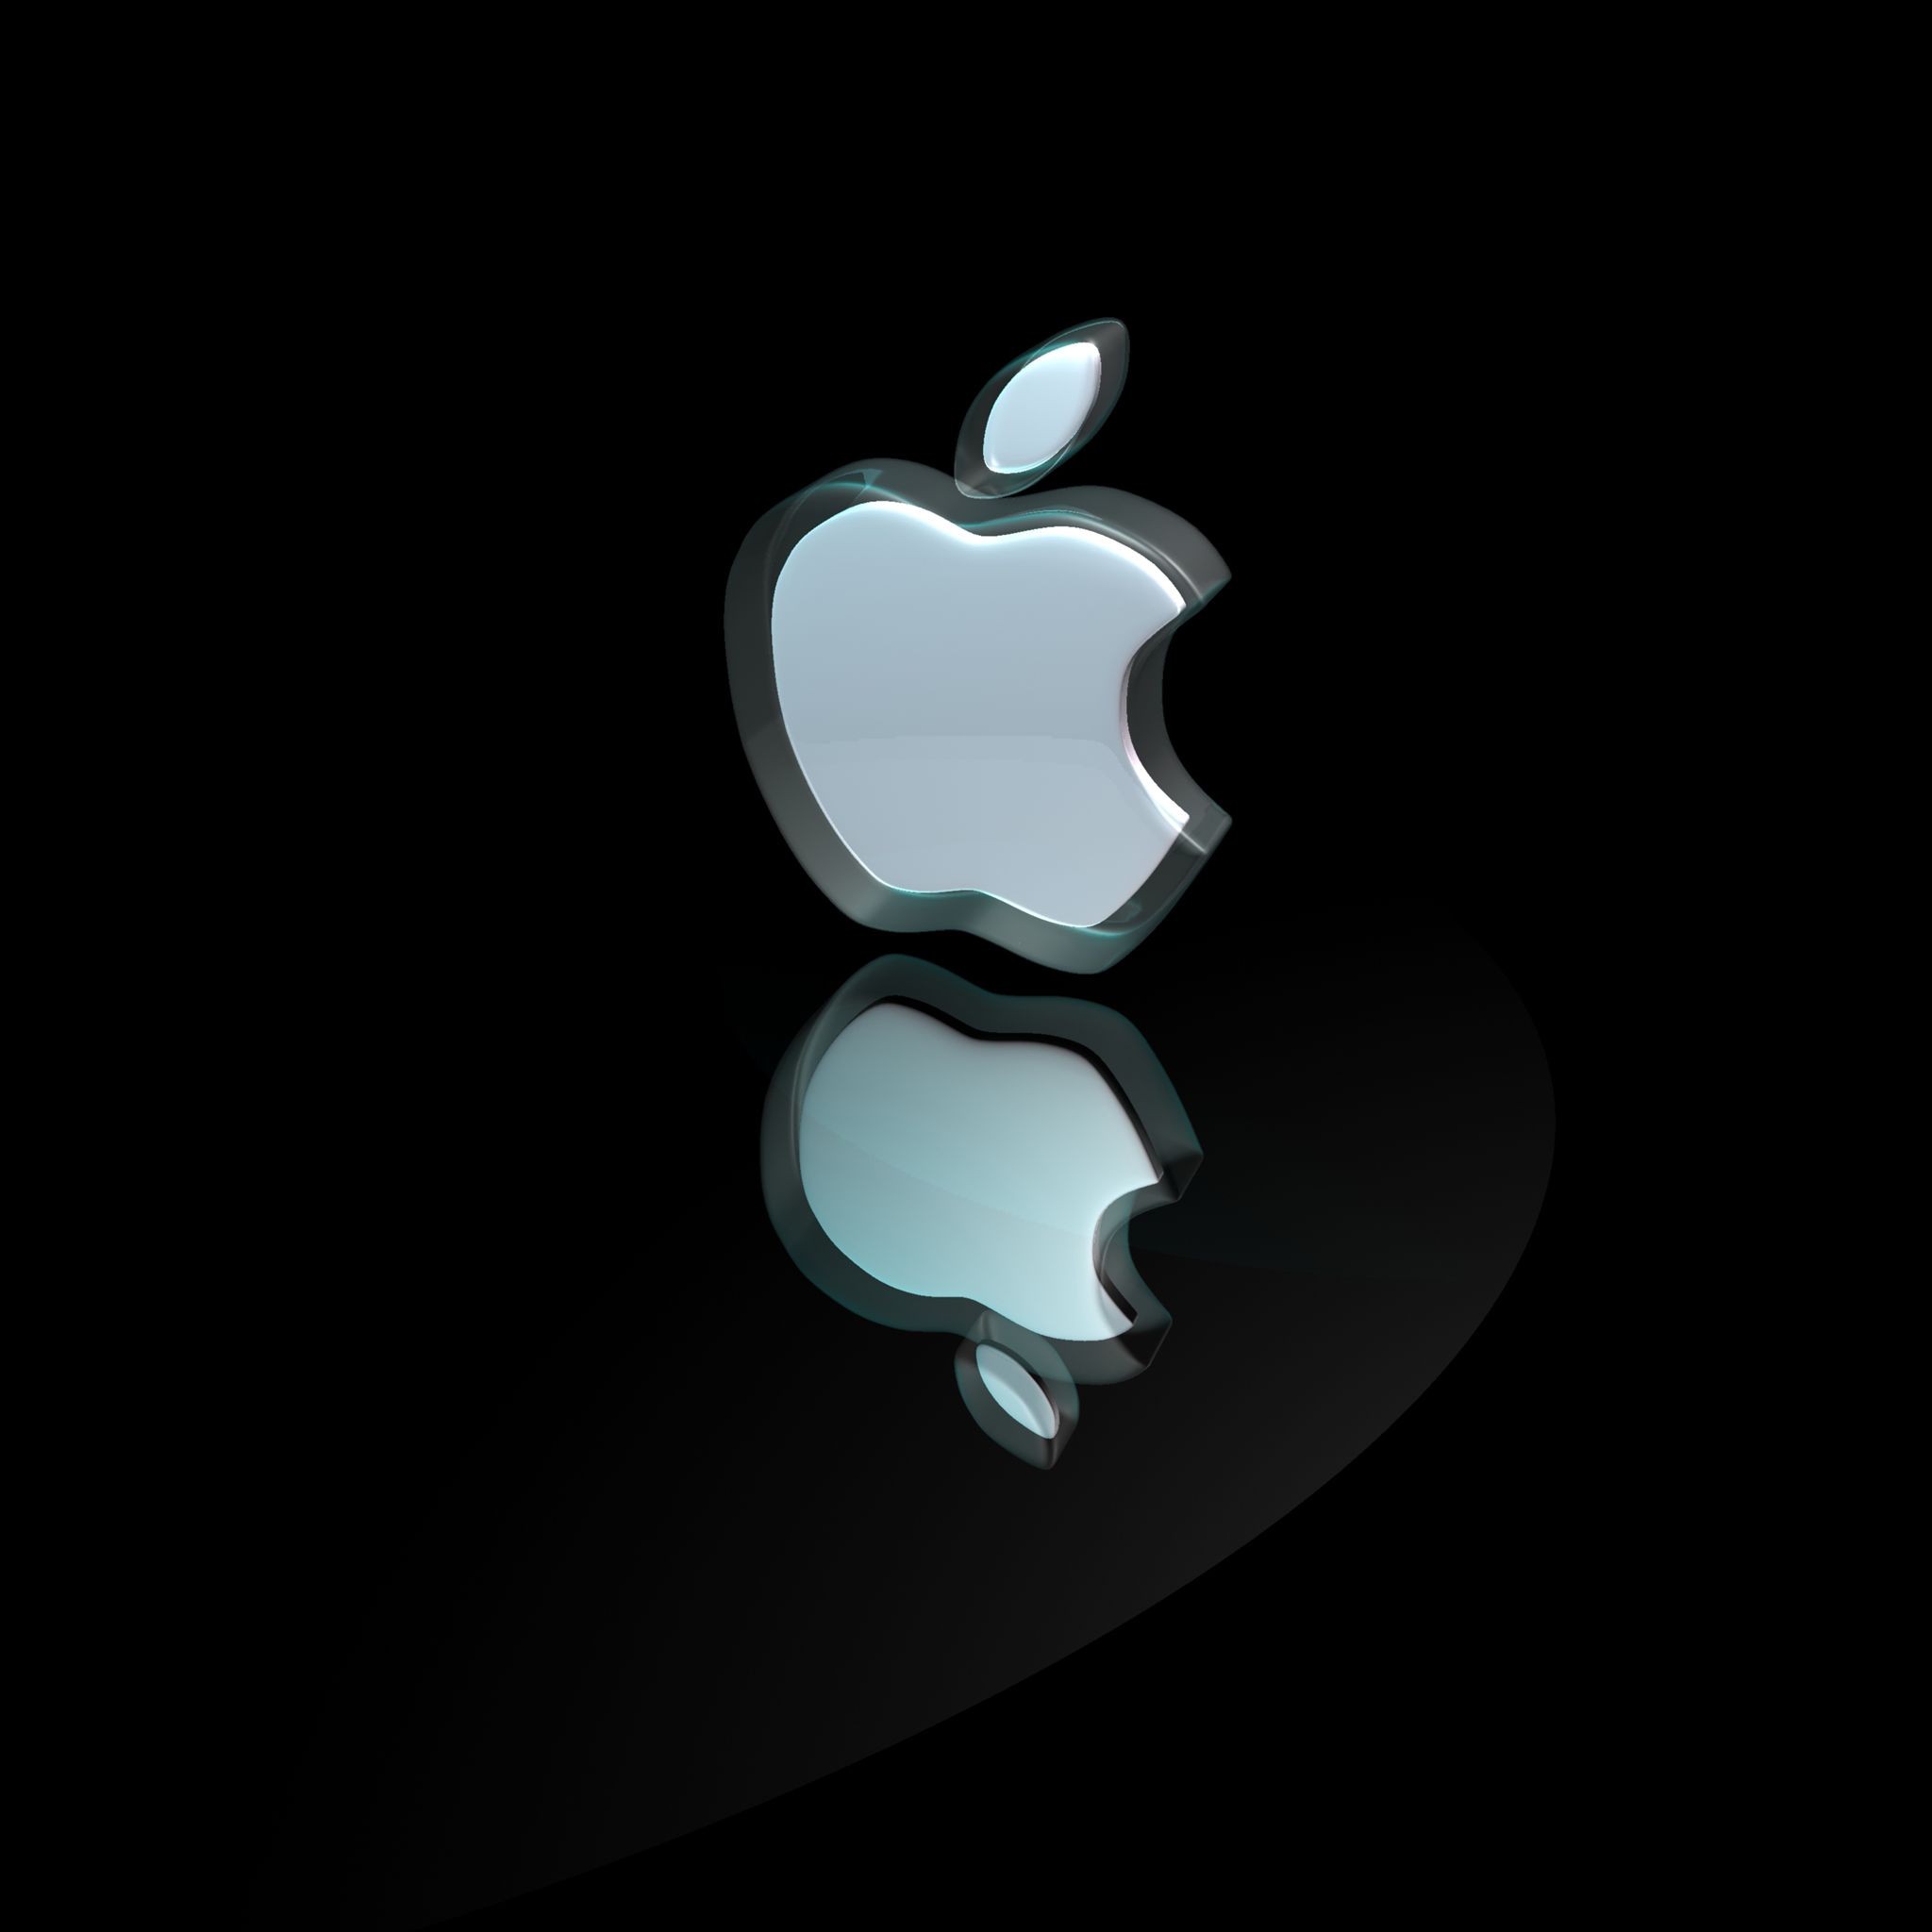 3D Apple 3Wallpapers iPad 3D Apple   iPad